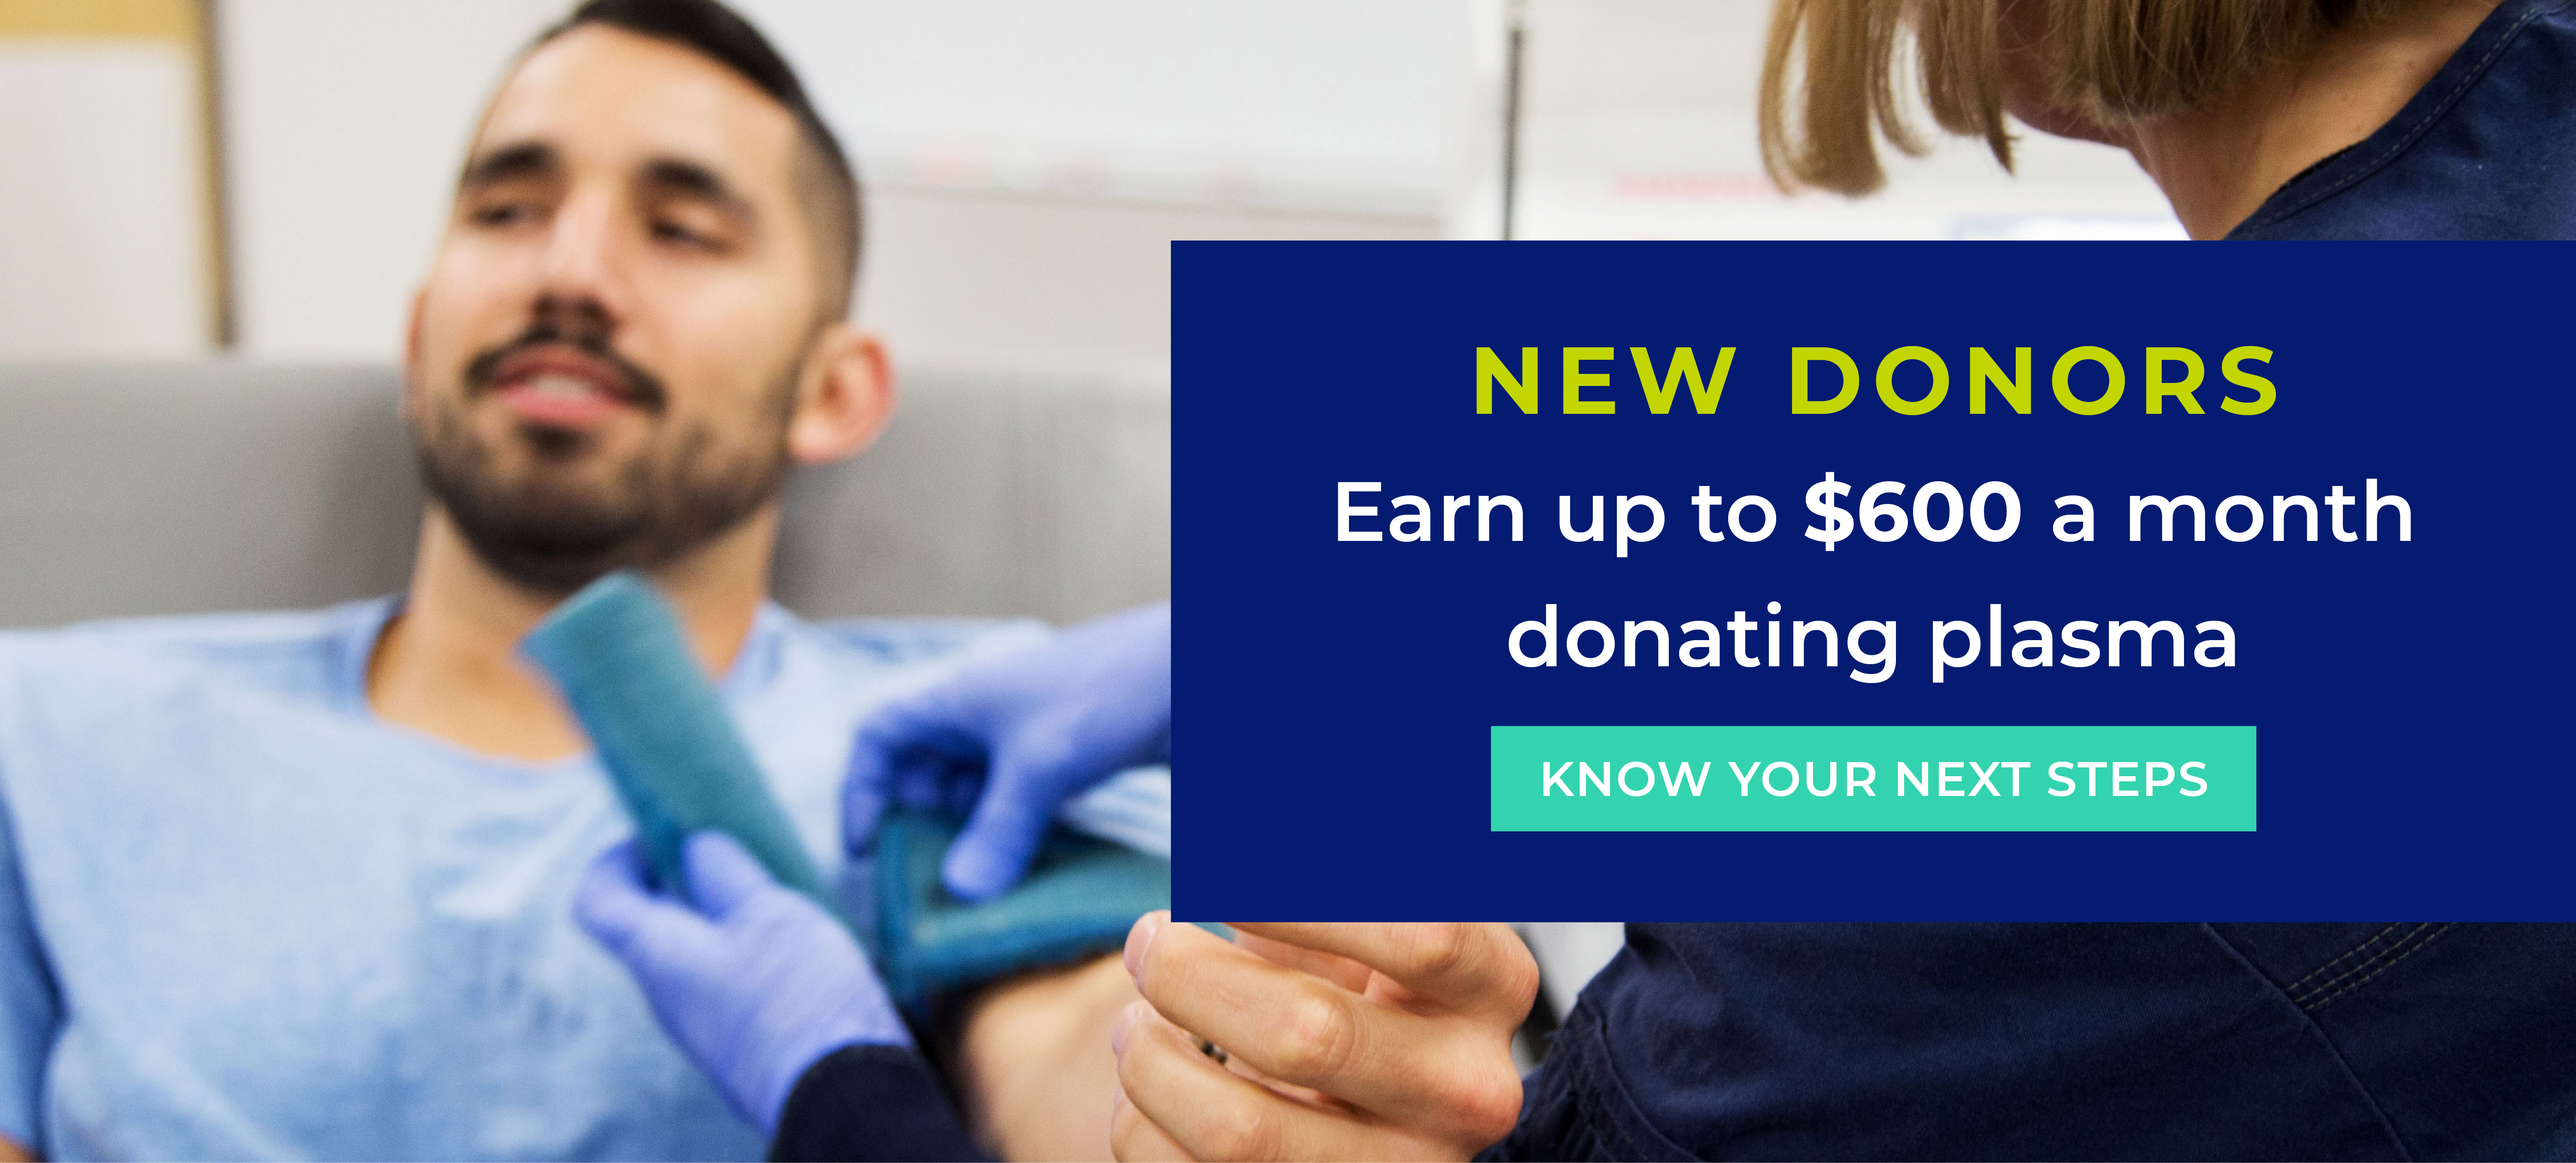 New Donors can earn up to $600 a month donating plasma!